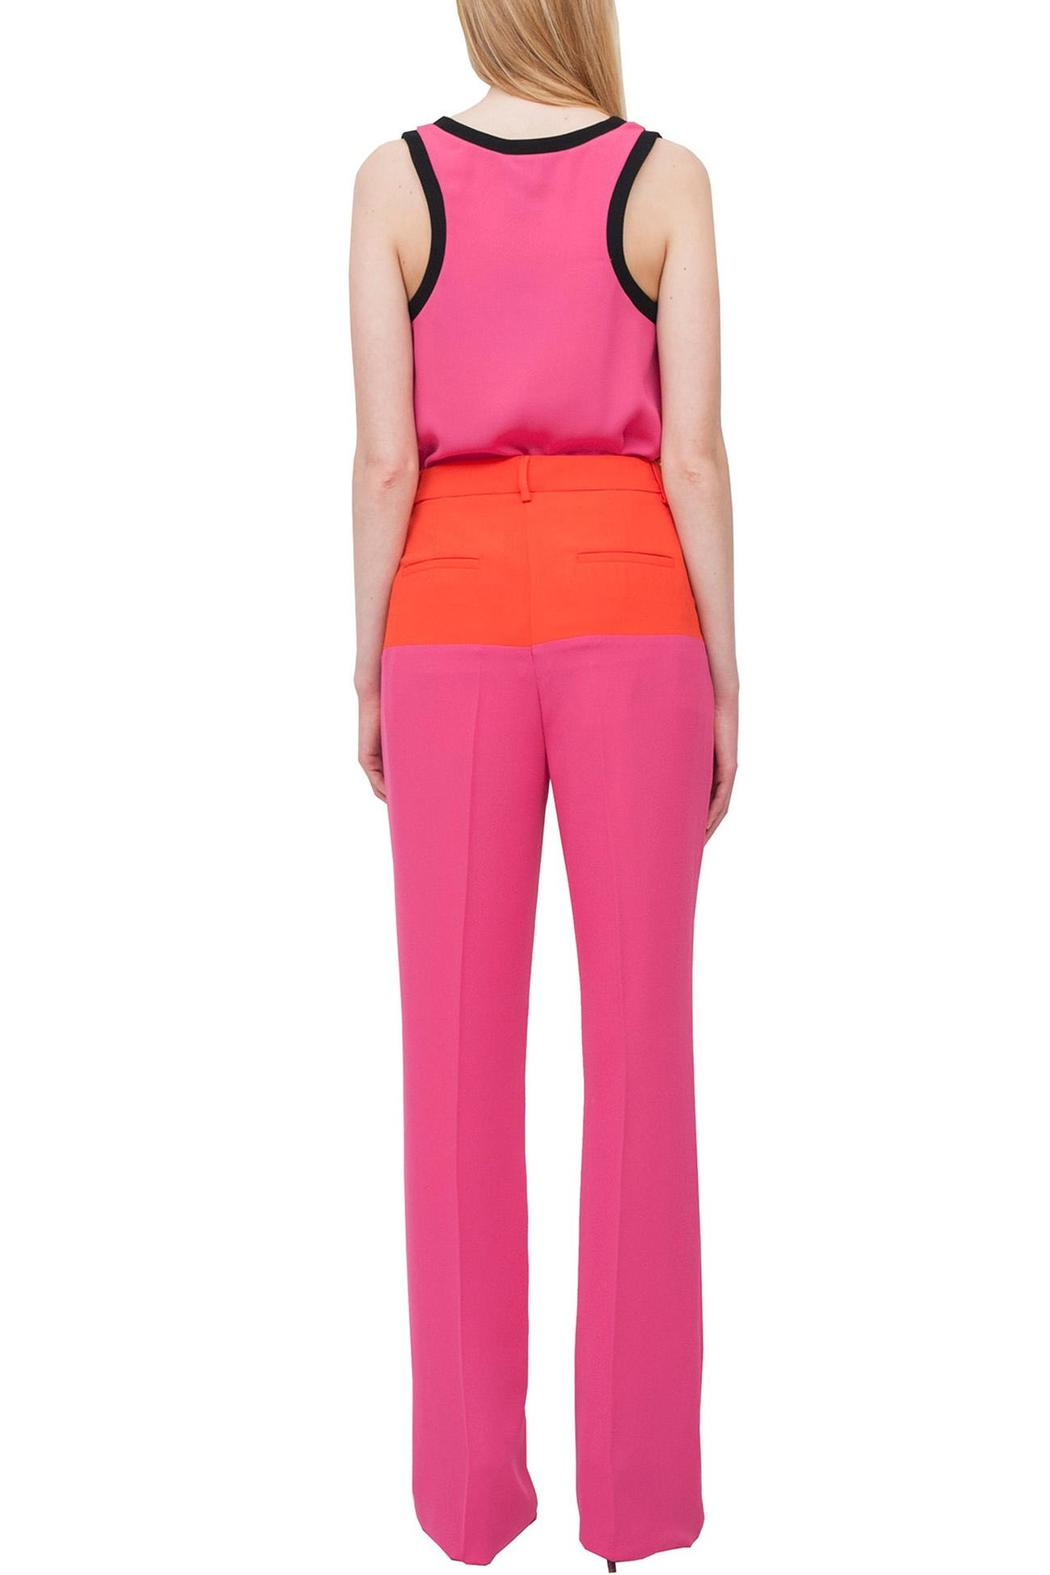 Cavalli Class Pink Stylish Trousers - Side Cropped Image